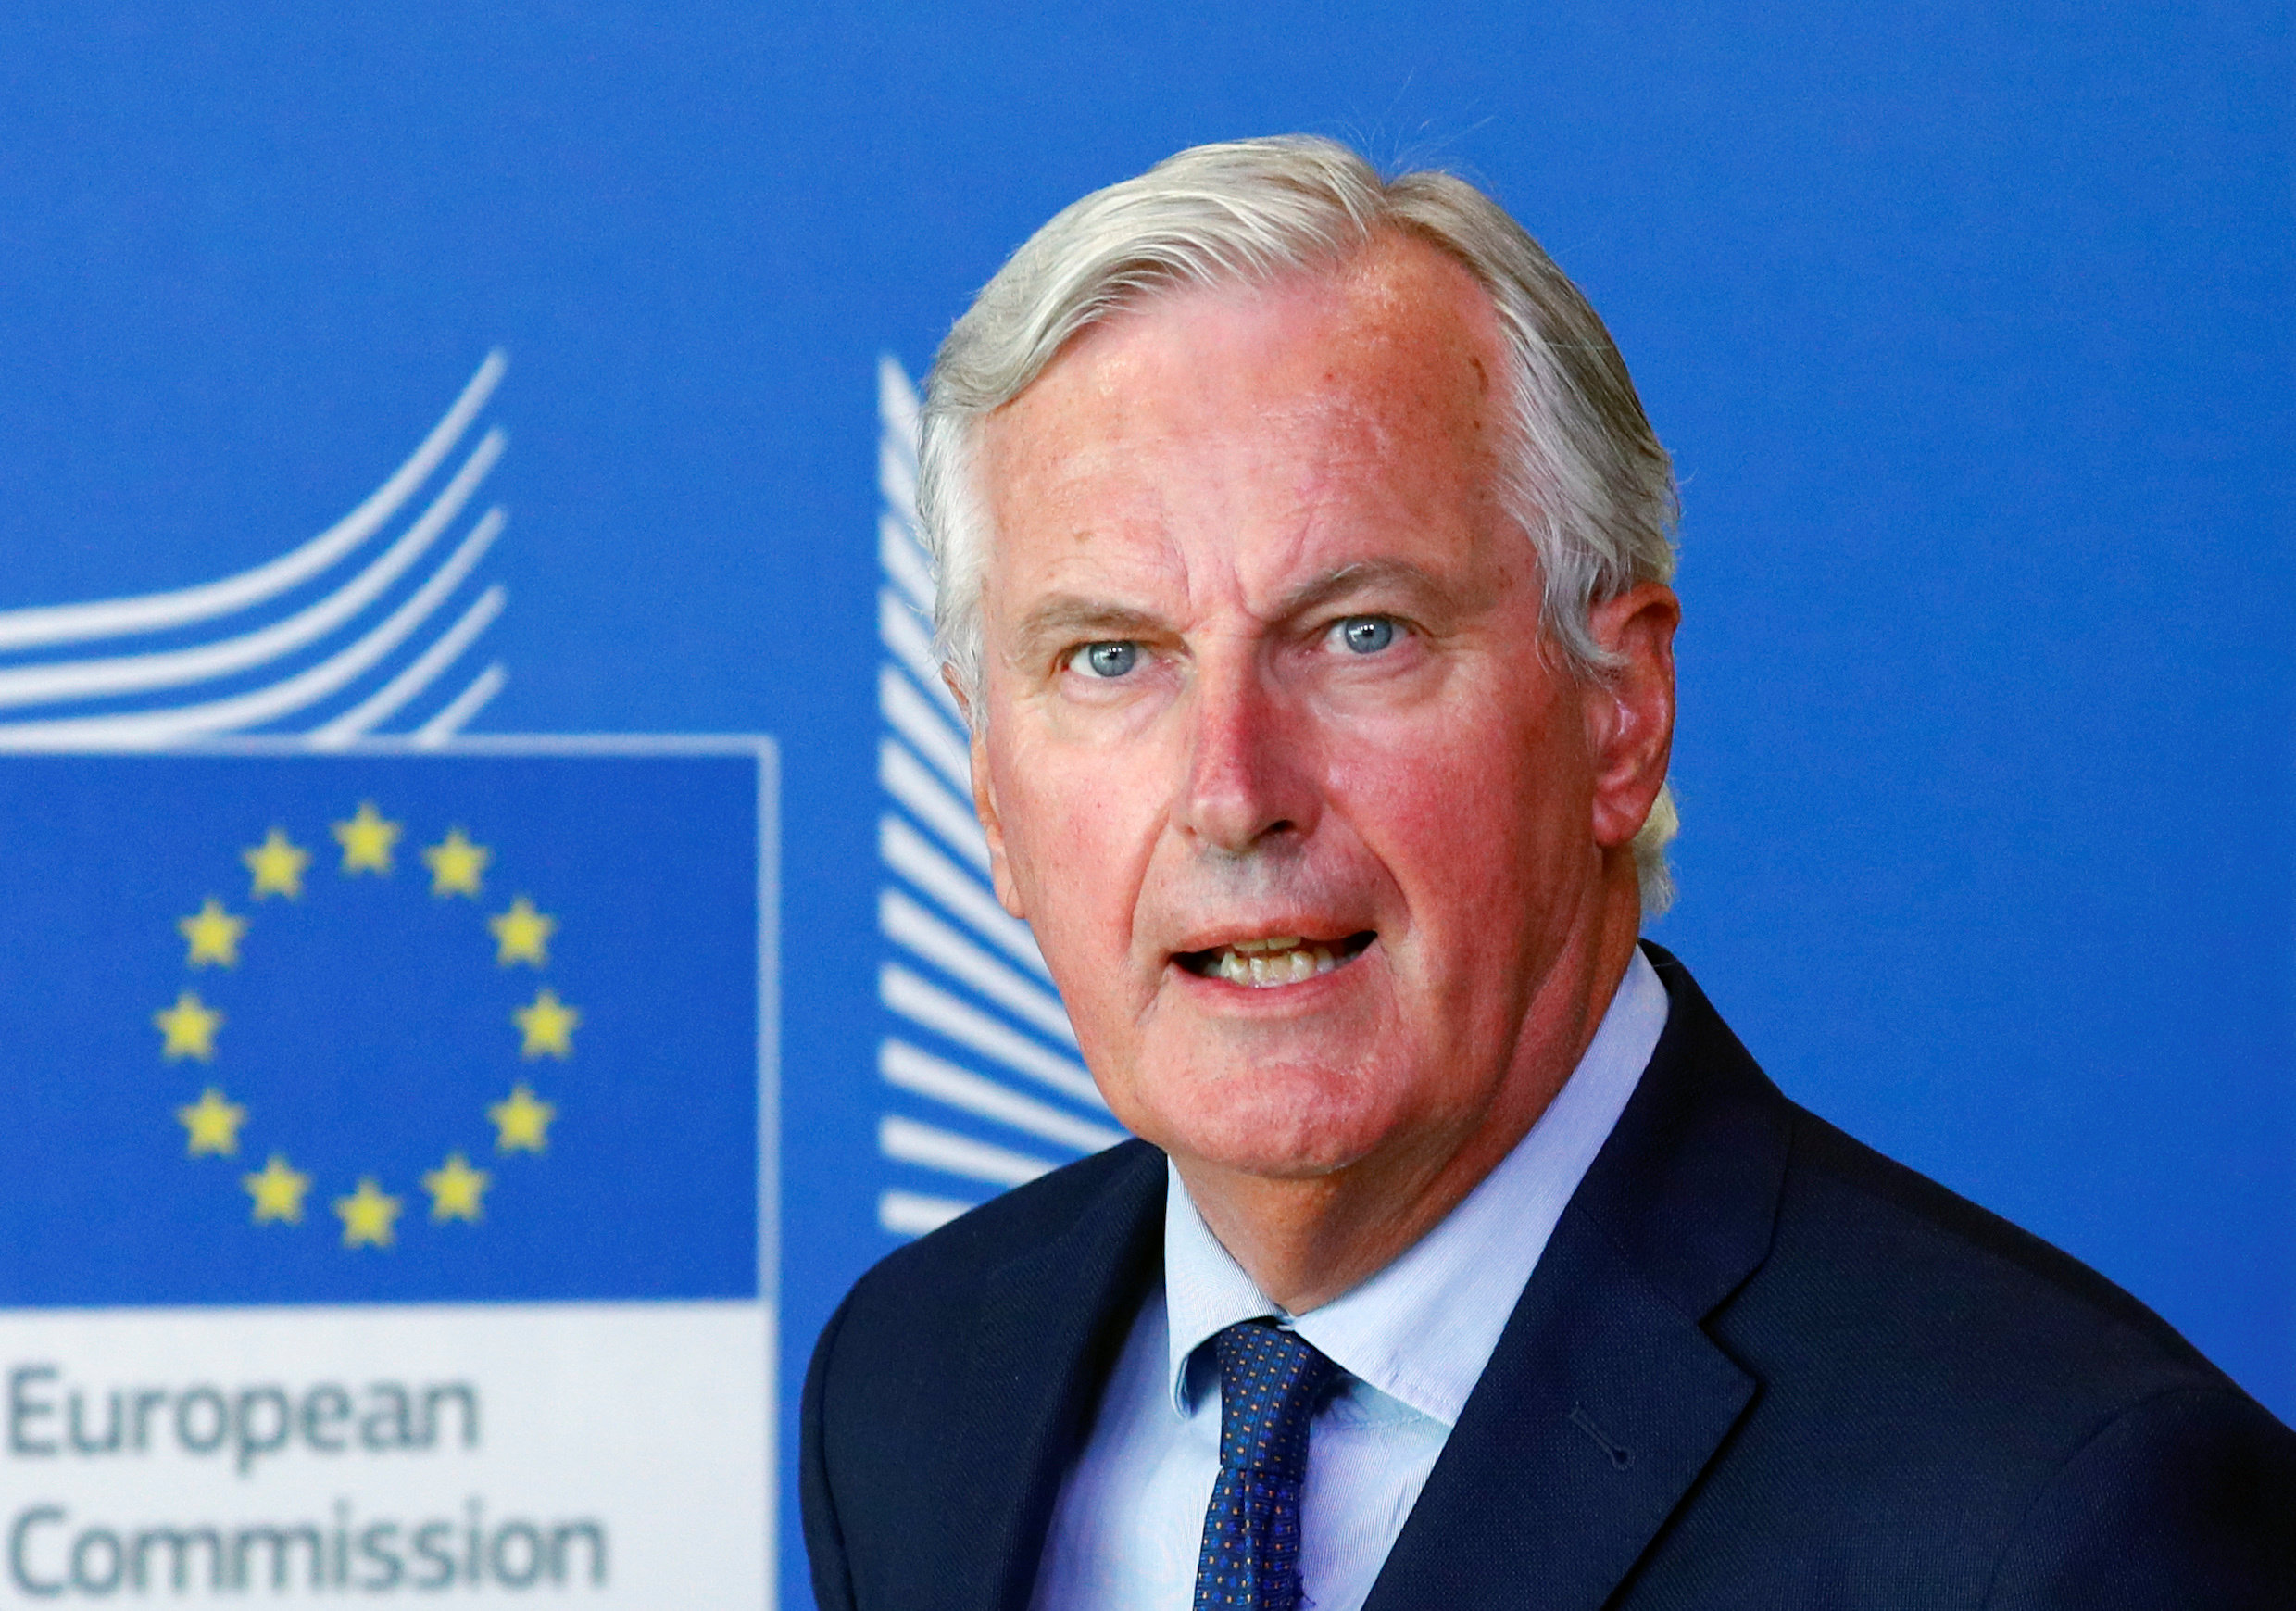 EU Says Brexit Deal in Sight but UK Must Still Do More